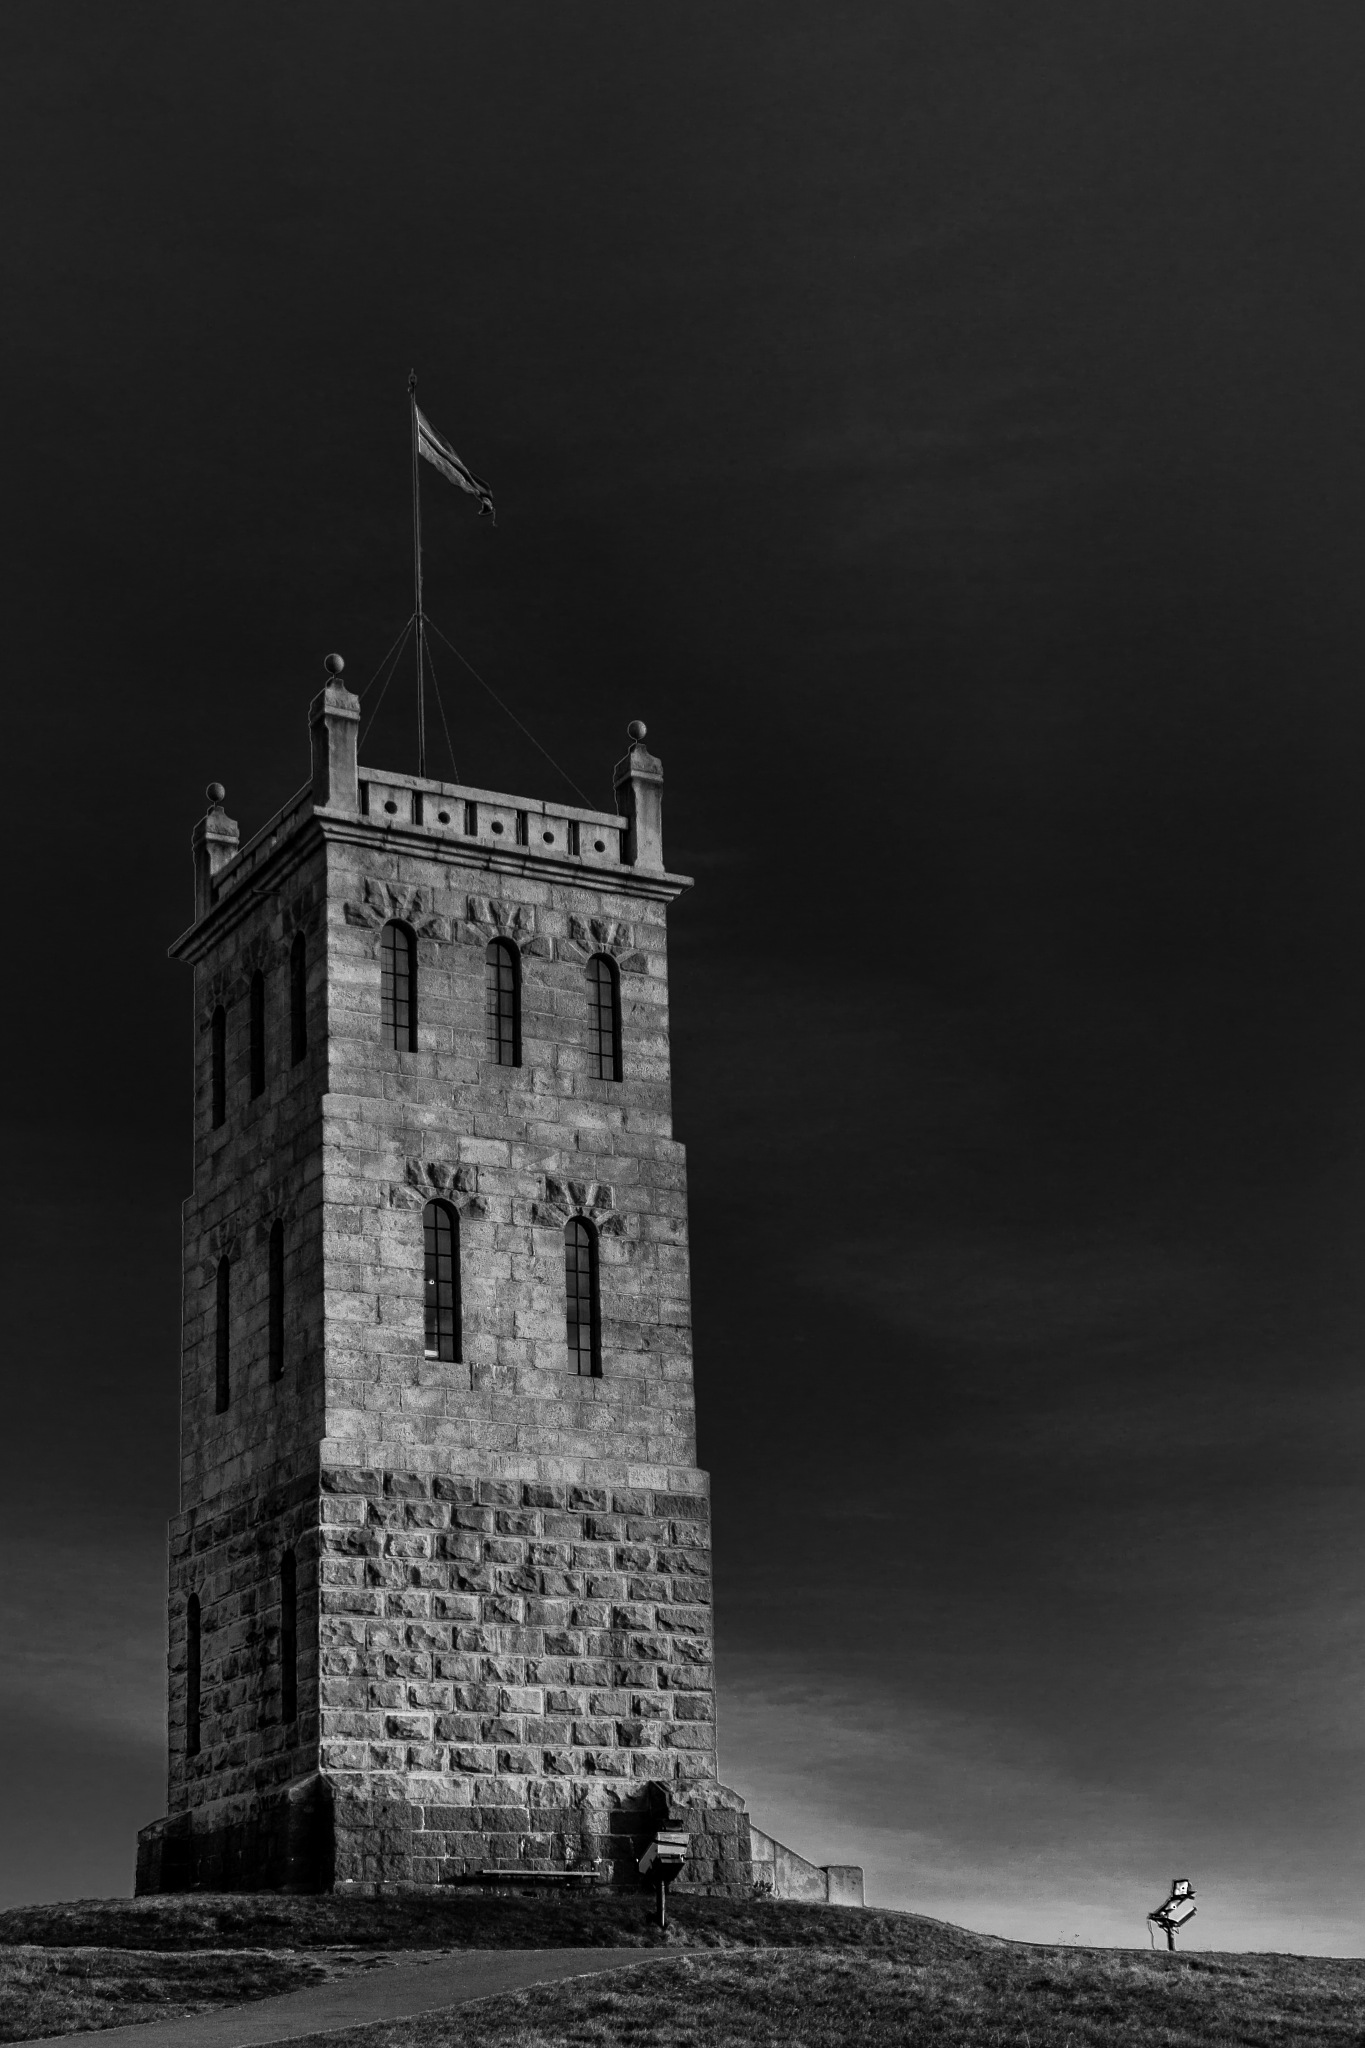 The Tower by MjollnirMacAlba